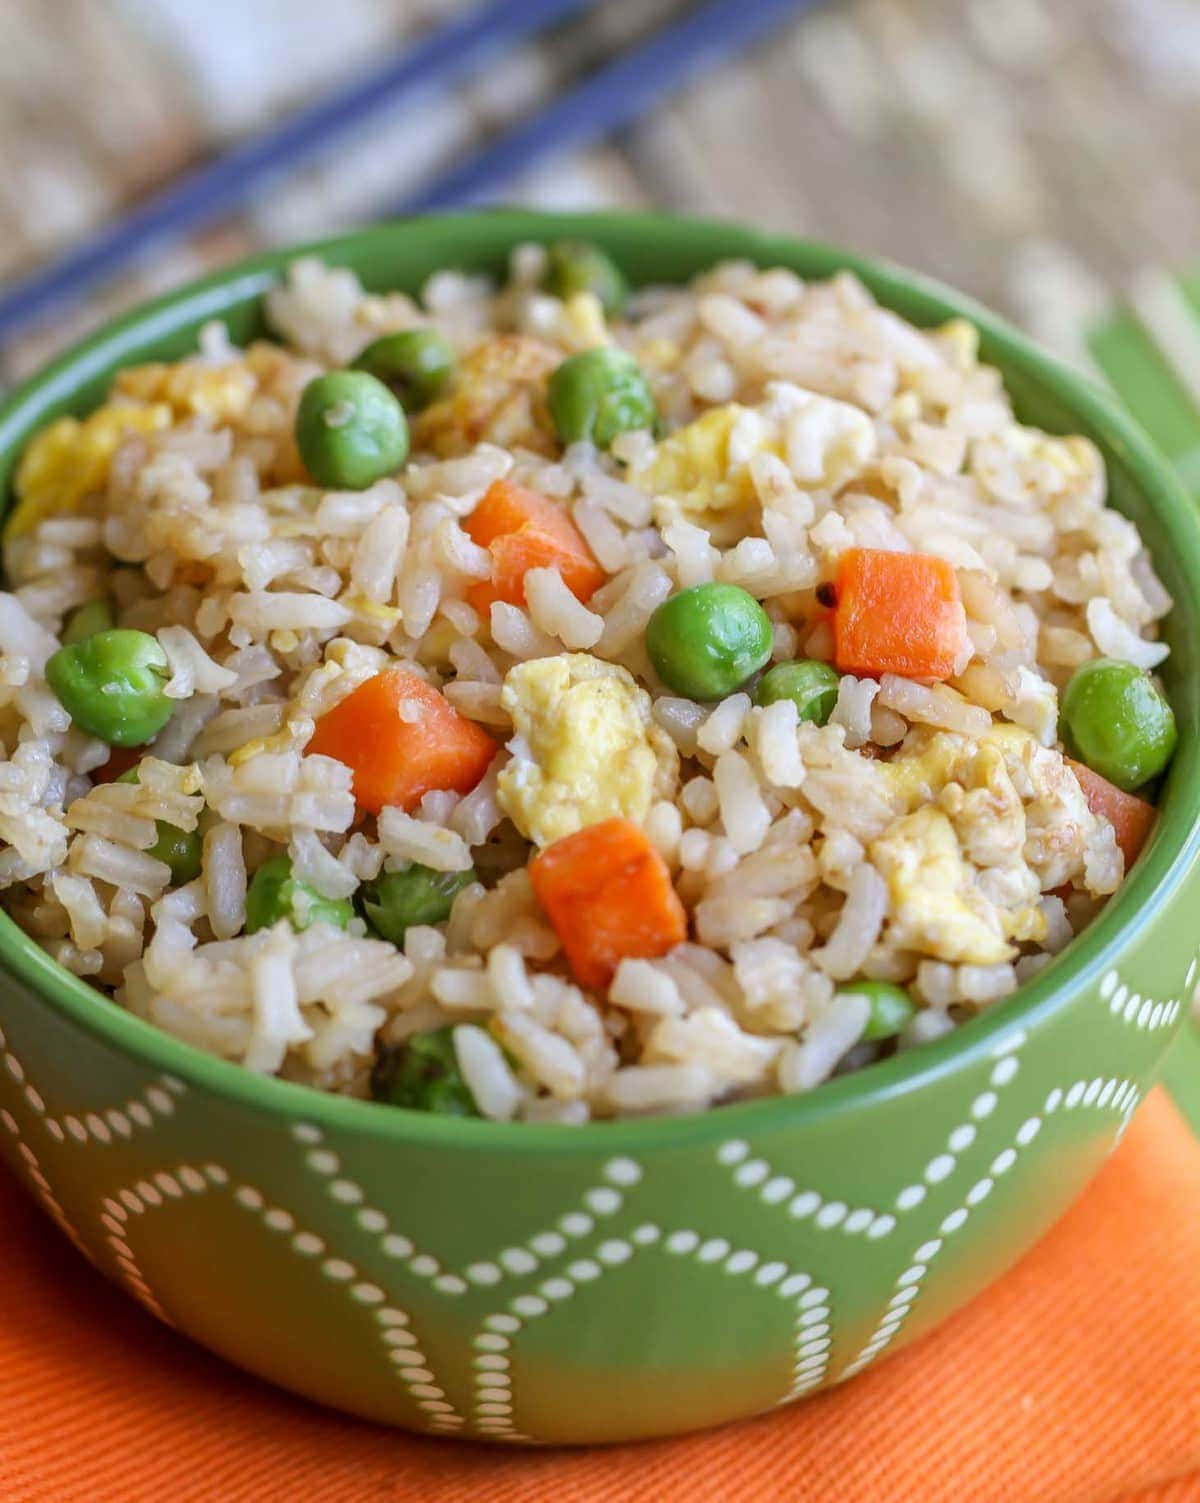 Fried rice with peas, carrots and eggs in a green bowl